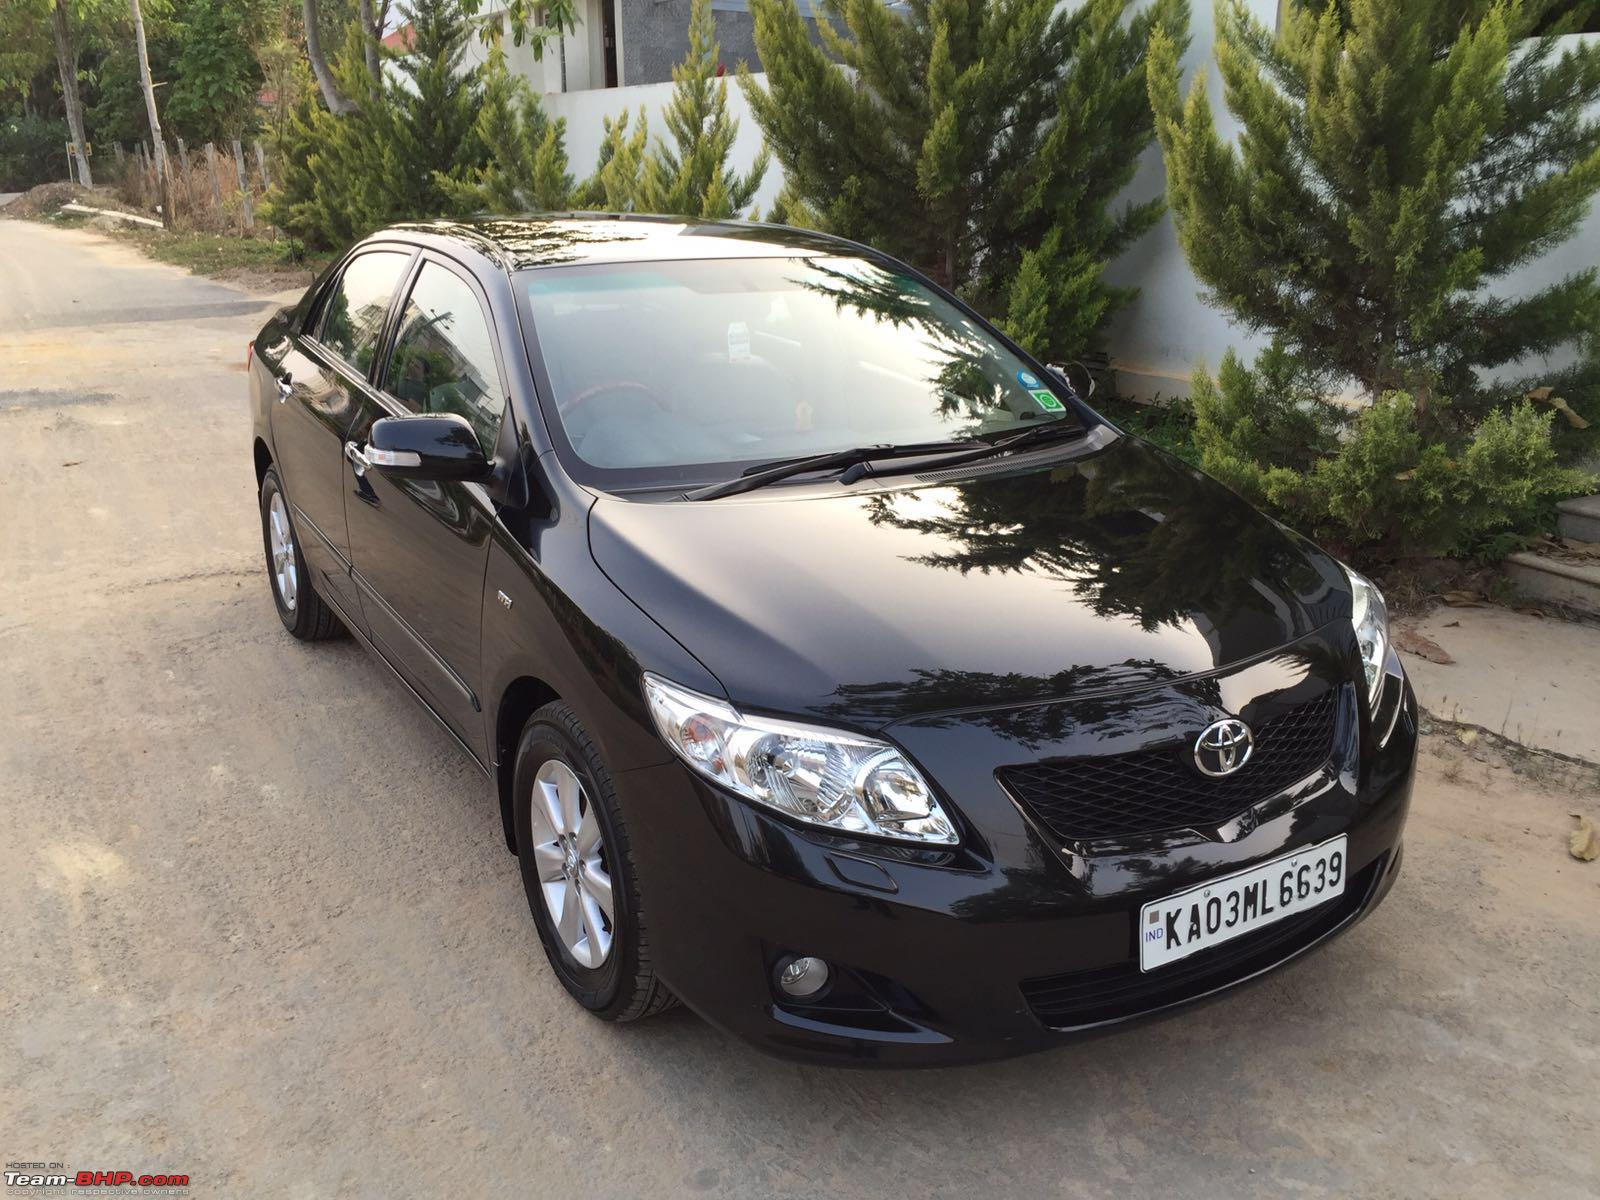 2009 toyota corolla altis 1 8 gl ownership report 68 000 kms and close to 8 years